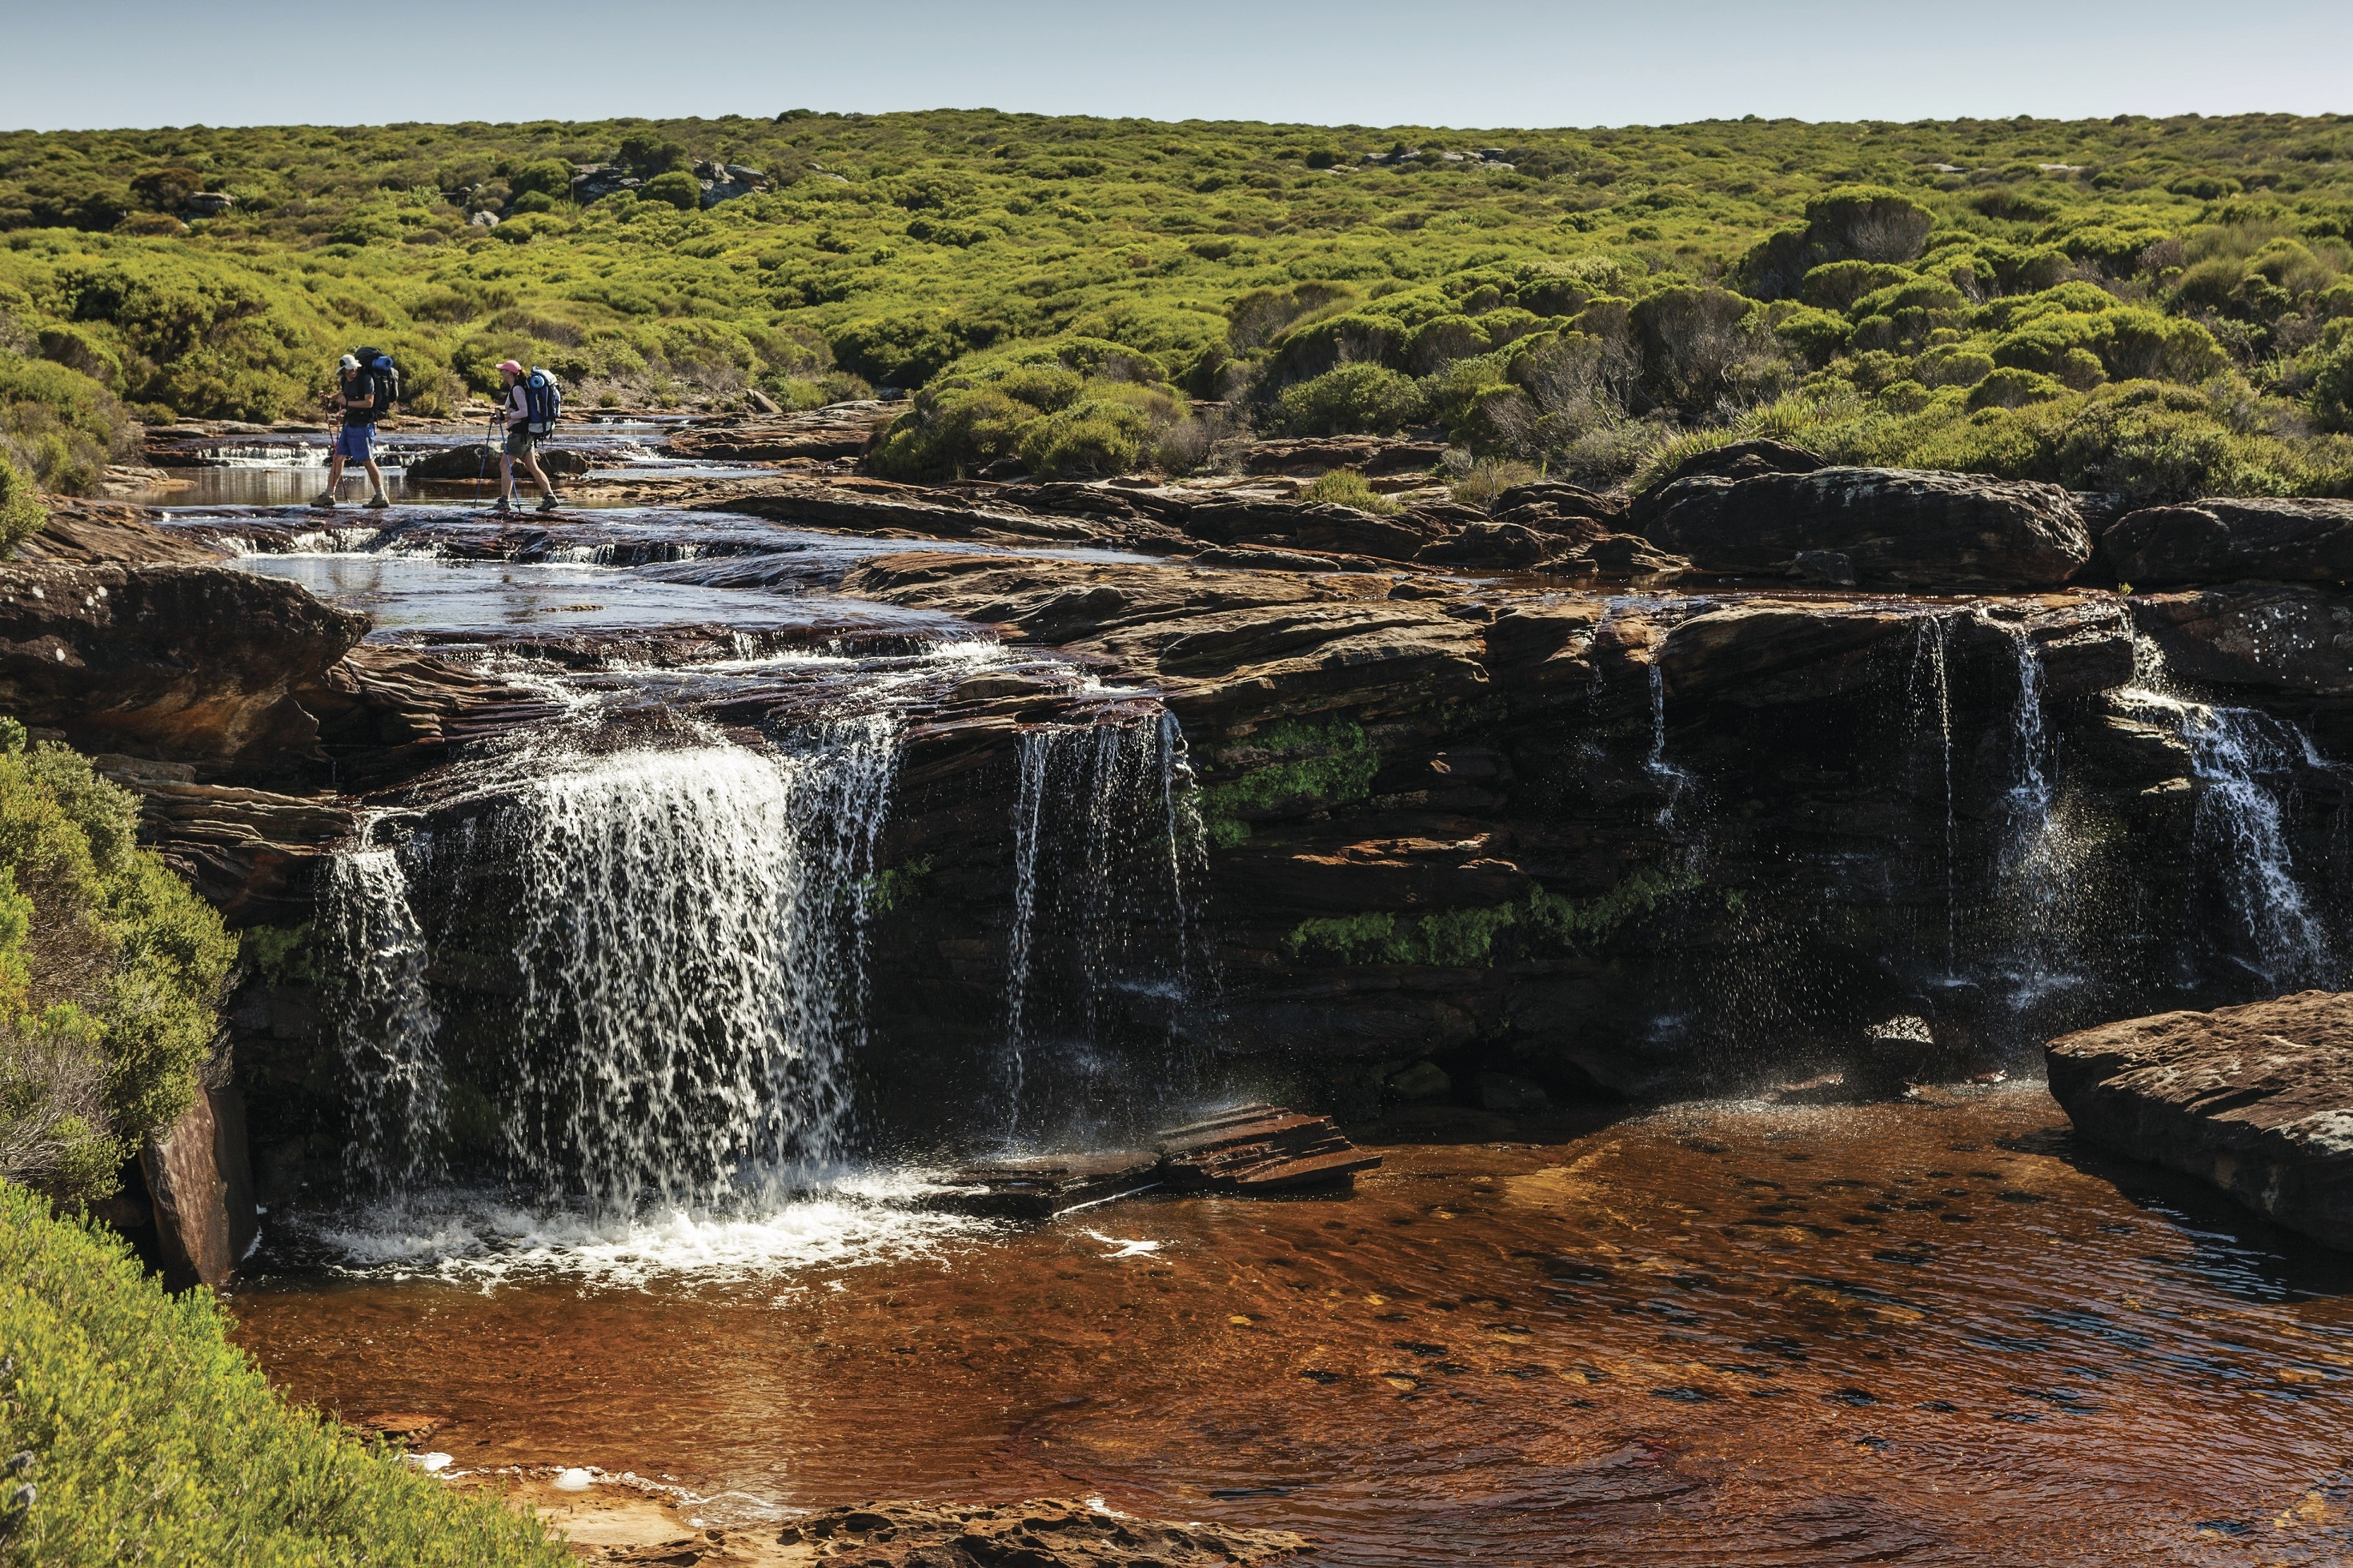 Bushwalkers walking near the edge of a rocky waterfall in the Royal National Park.